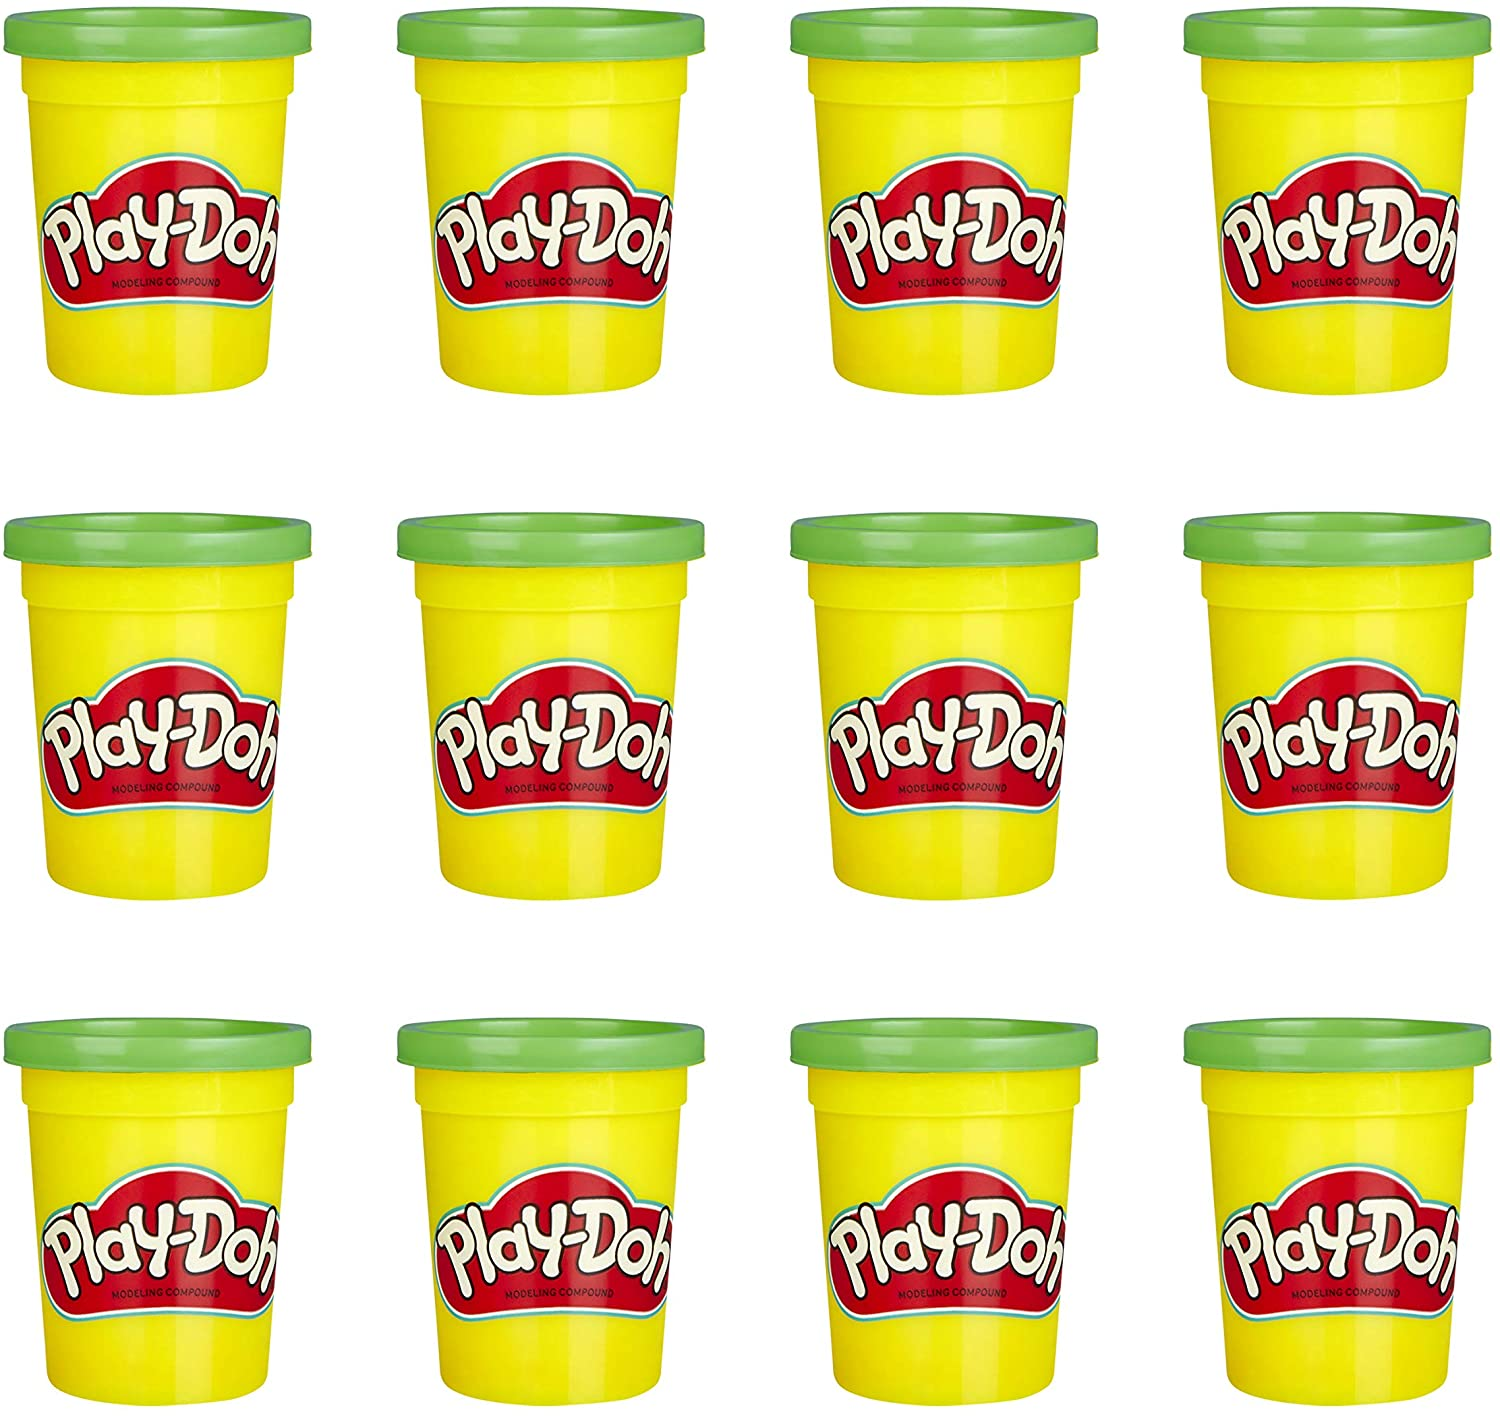 Play-Doh Bulk 12-Pack of Green Non-Toxic Modeling Compound, 4-Ounce Cans